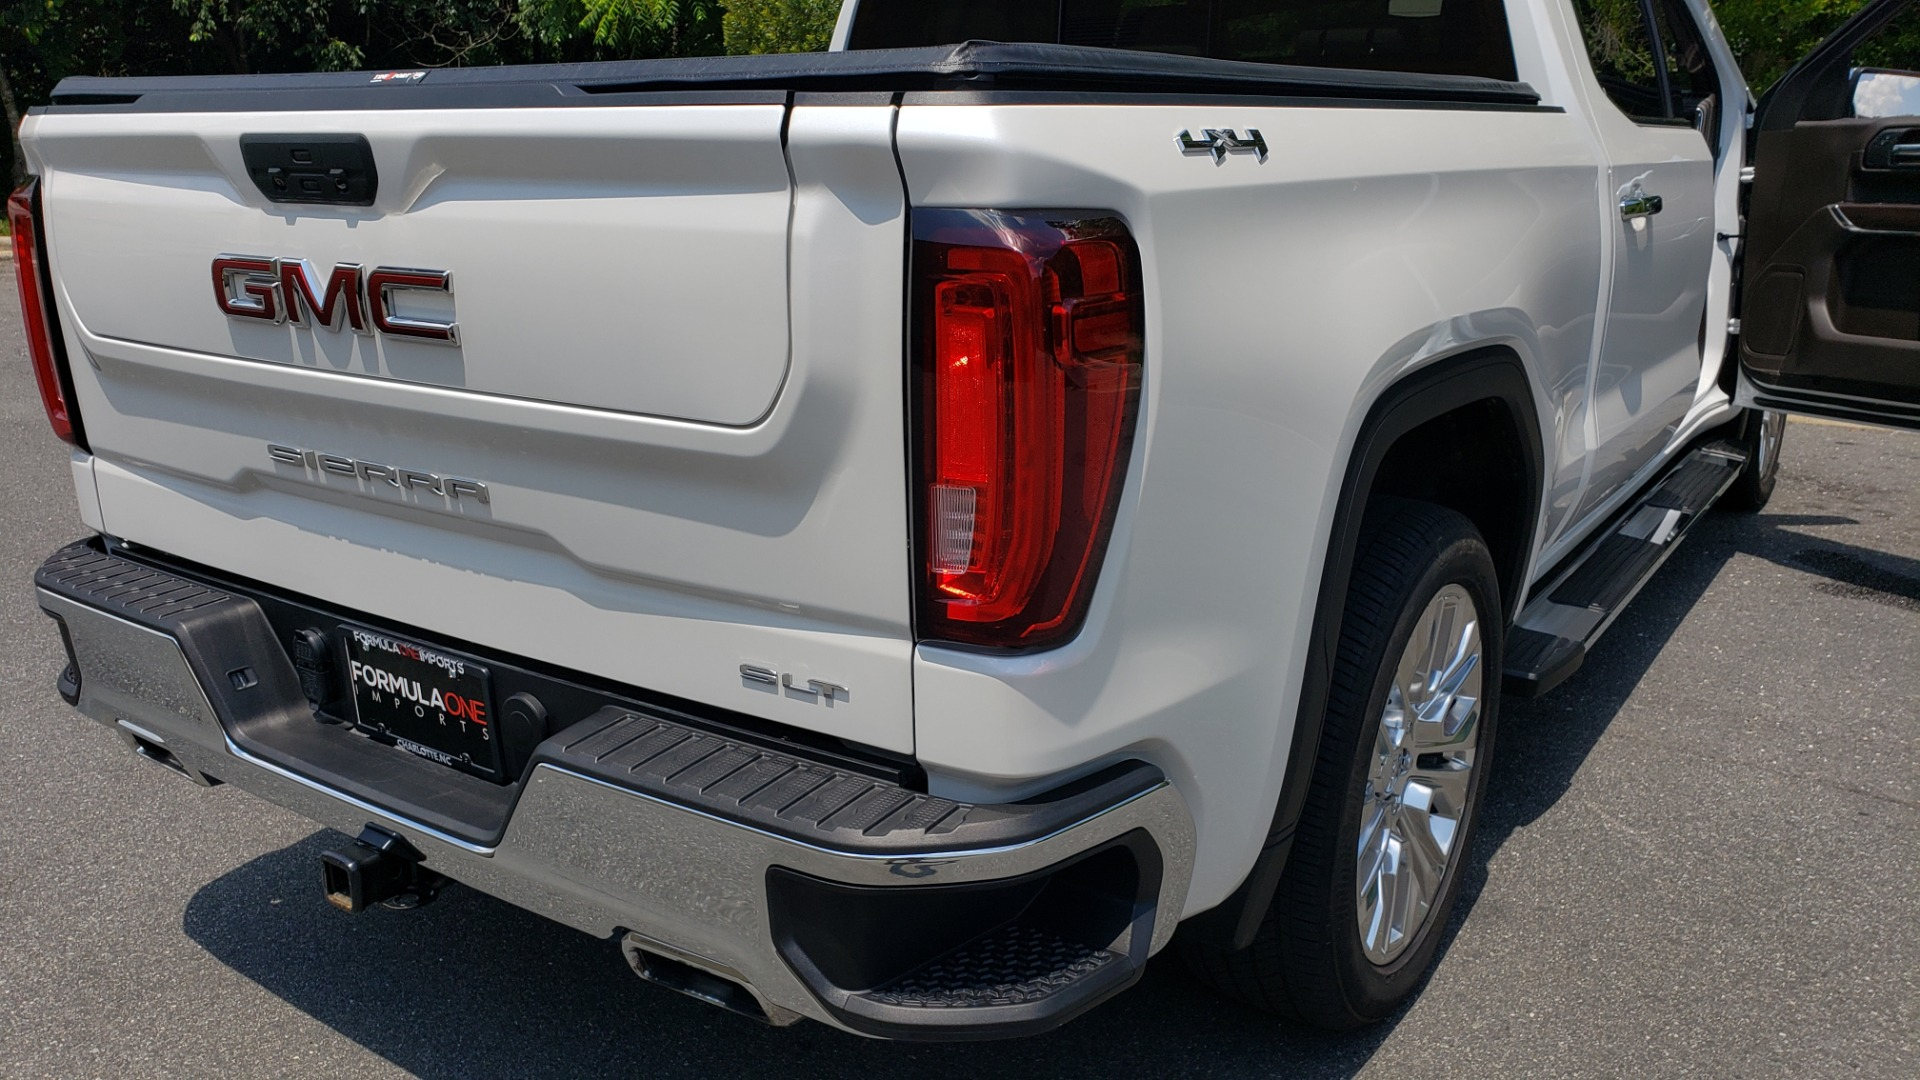 Used 2019 GMC SIERRA 1500 SLT 4WD CREWCAB / PREMIUM / 6.2L V8 / NAV / SUNROOF / VENT SEATS for sale Sold at Formula Imports in Charlotte NC 28227 33